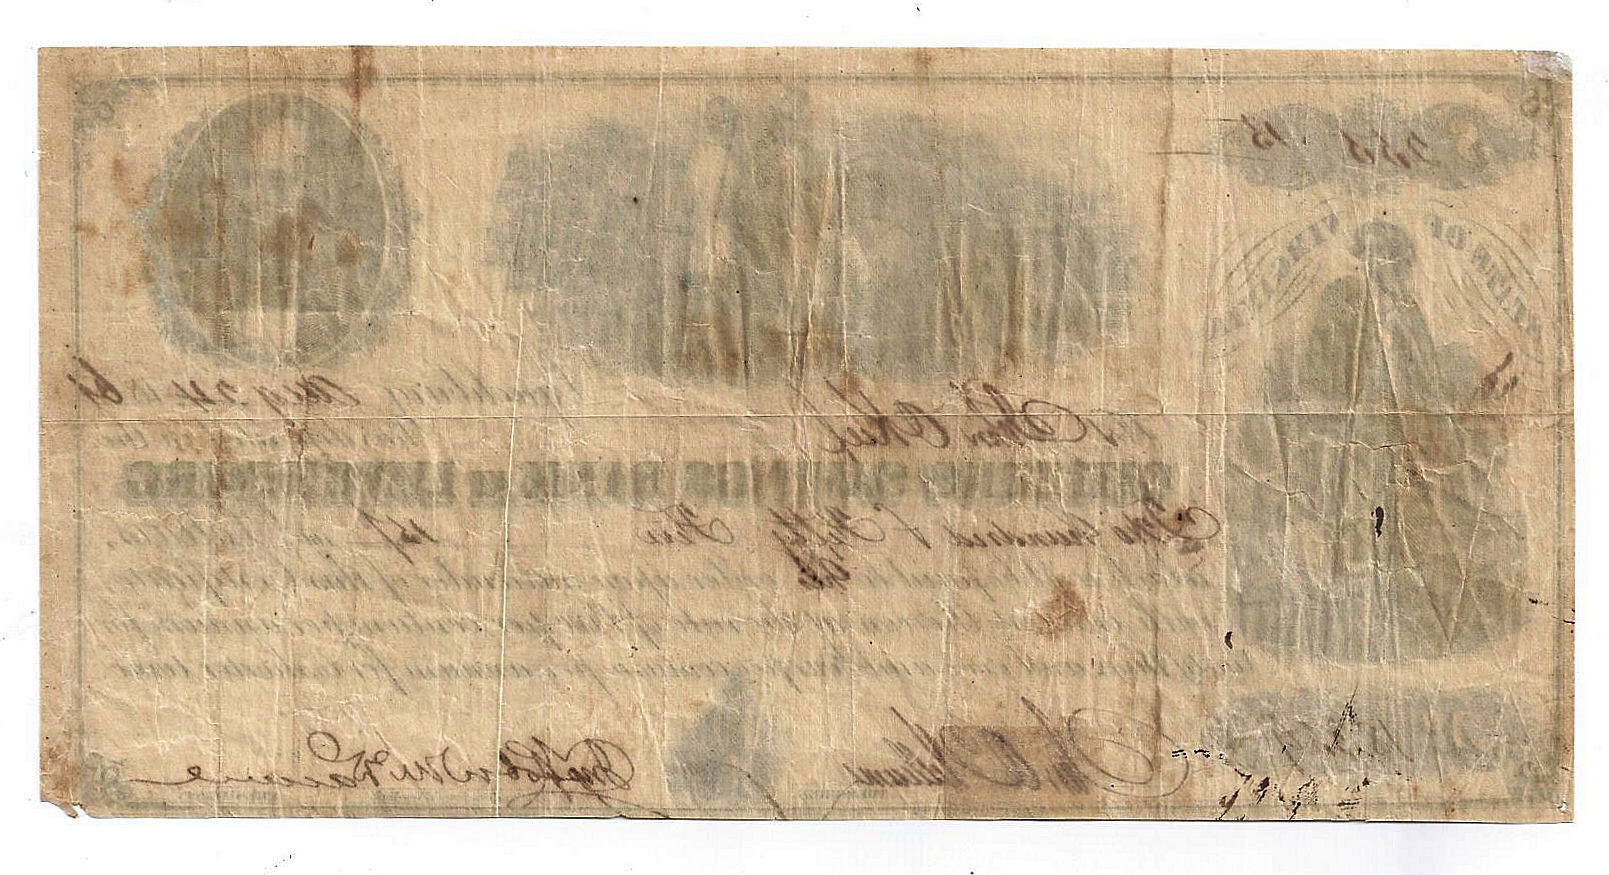 1861 the citizens savings bank at lynchburg certificate of deposit 1betcityfo Images